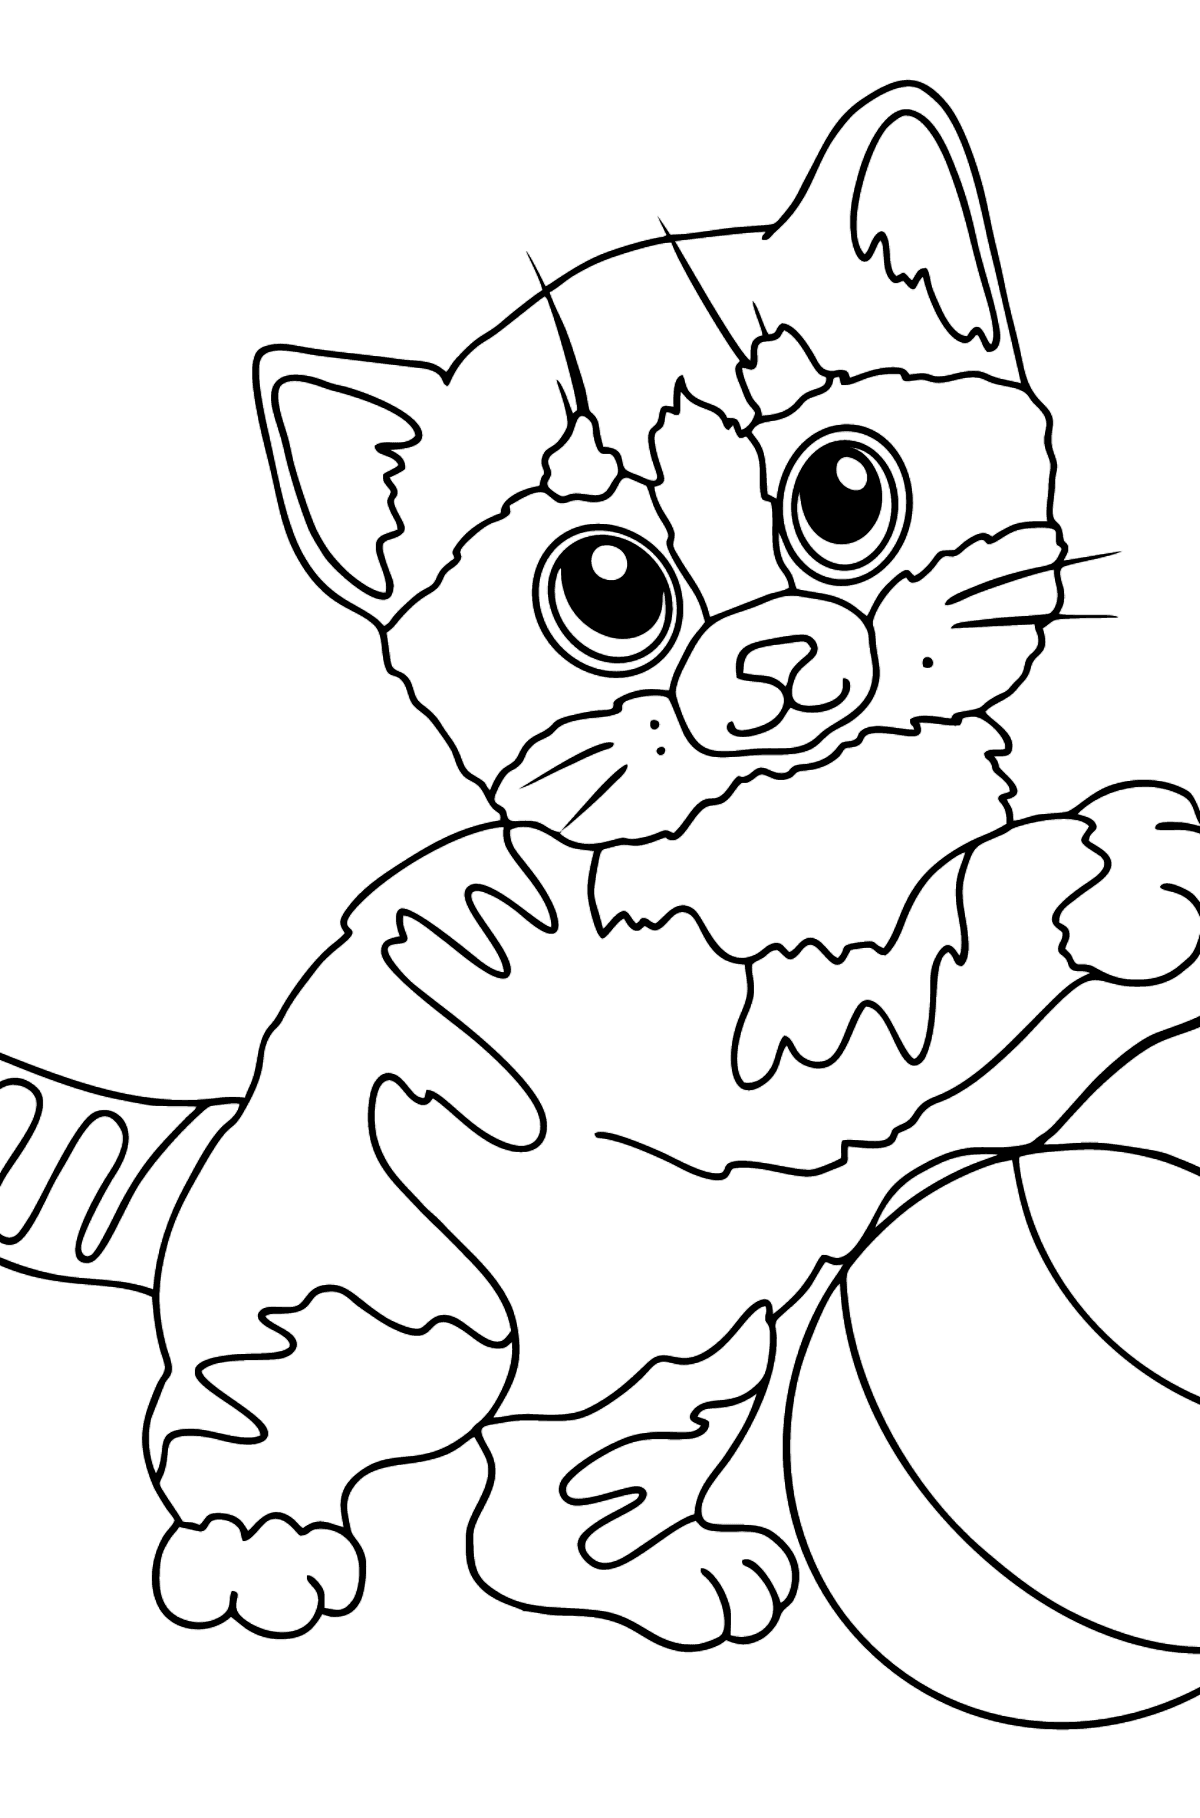 Coloring Page - A Kitten has Caught Its Favorite Ball - Coloring Pages for Kids